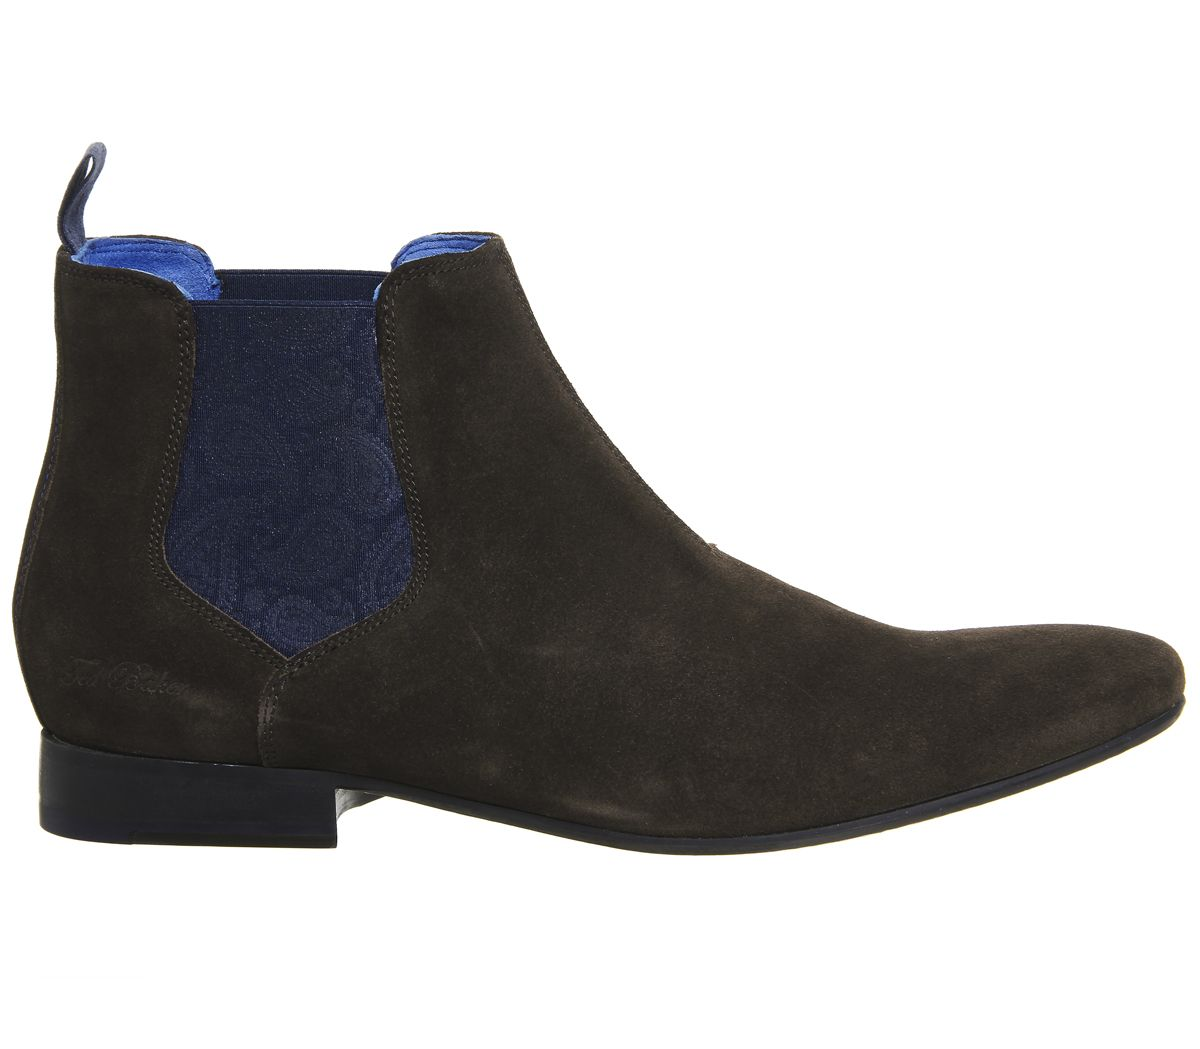 c808b716a6d Hourb 2 Chelsea Boots